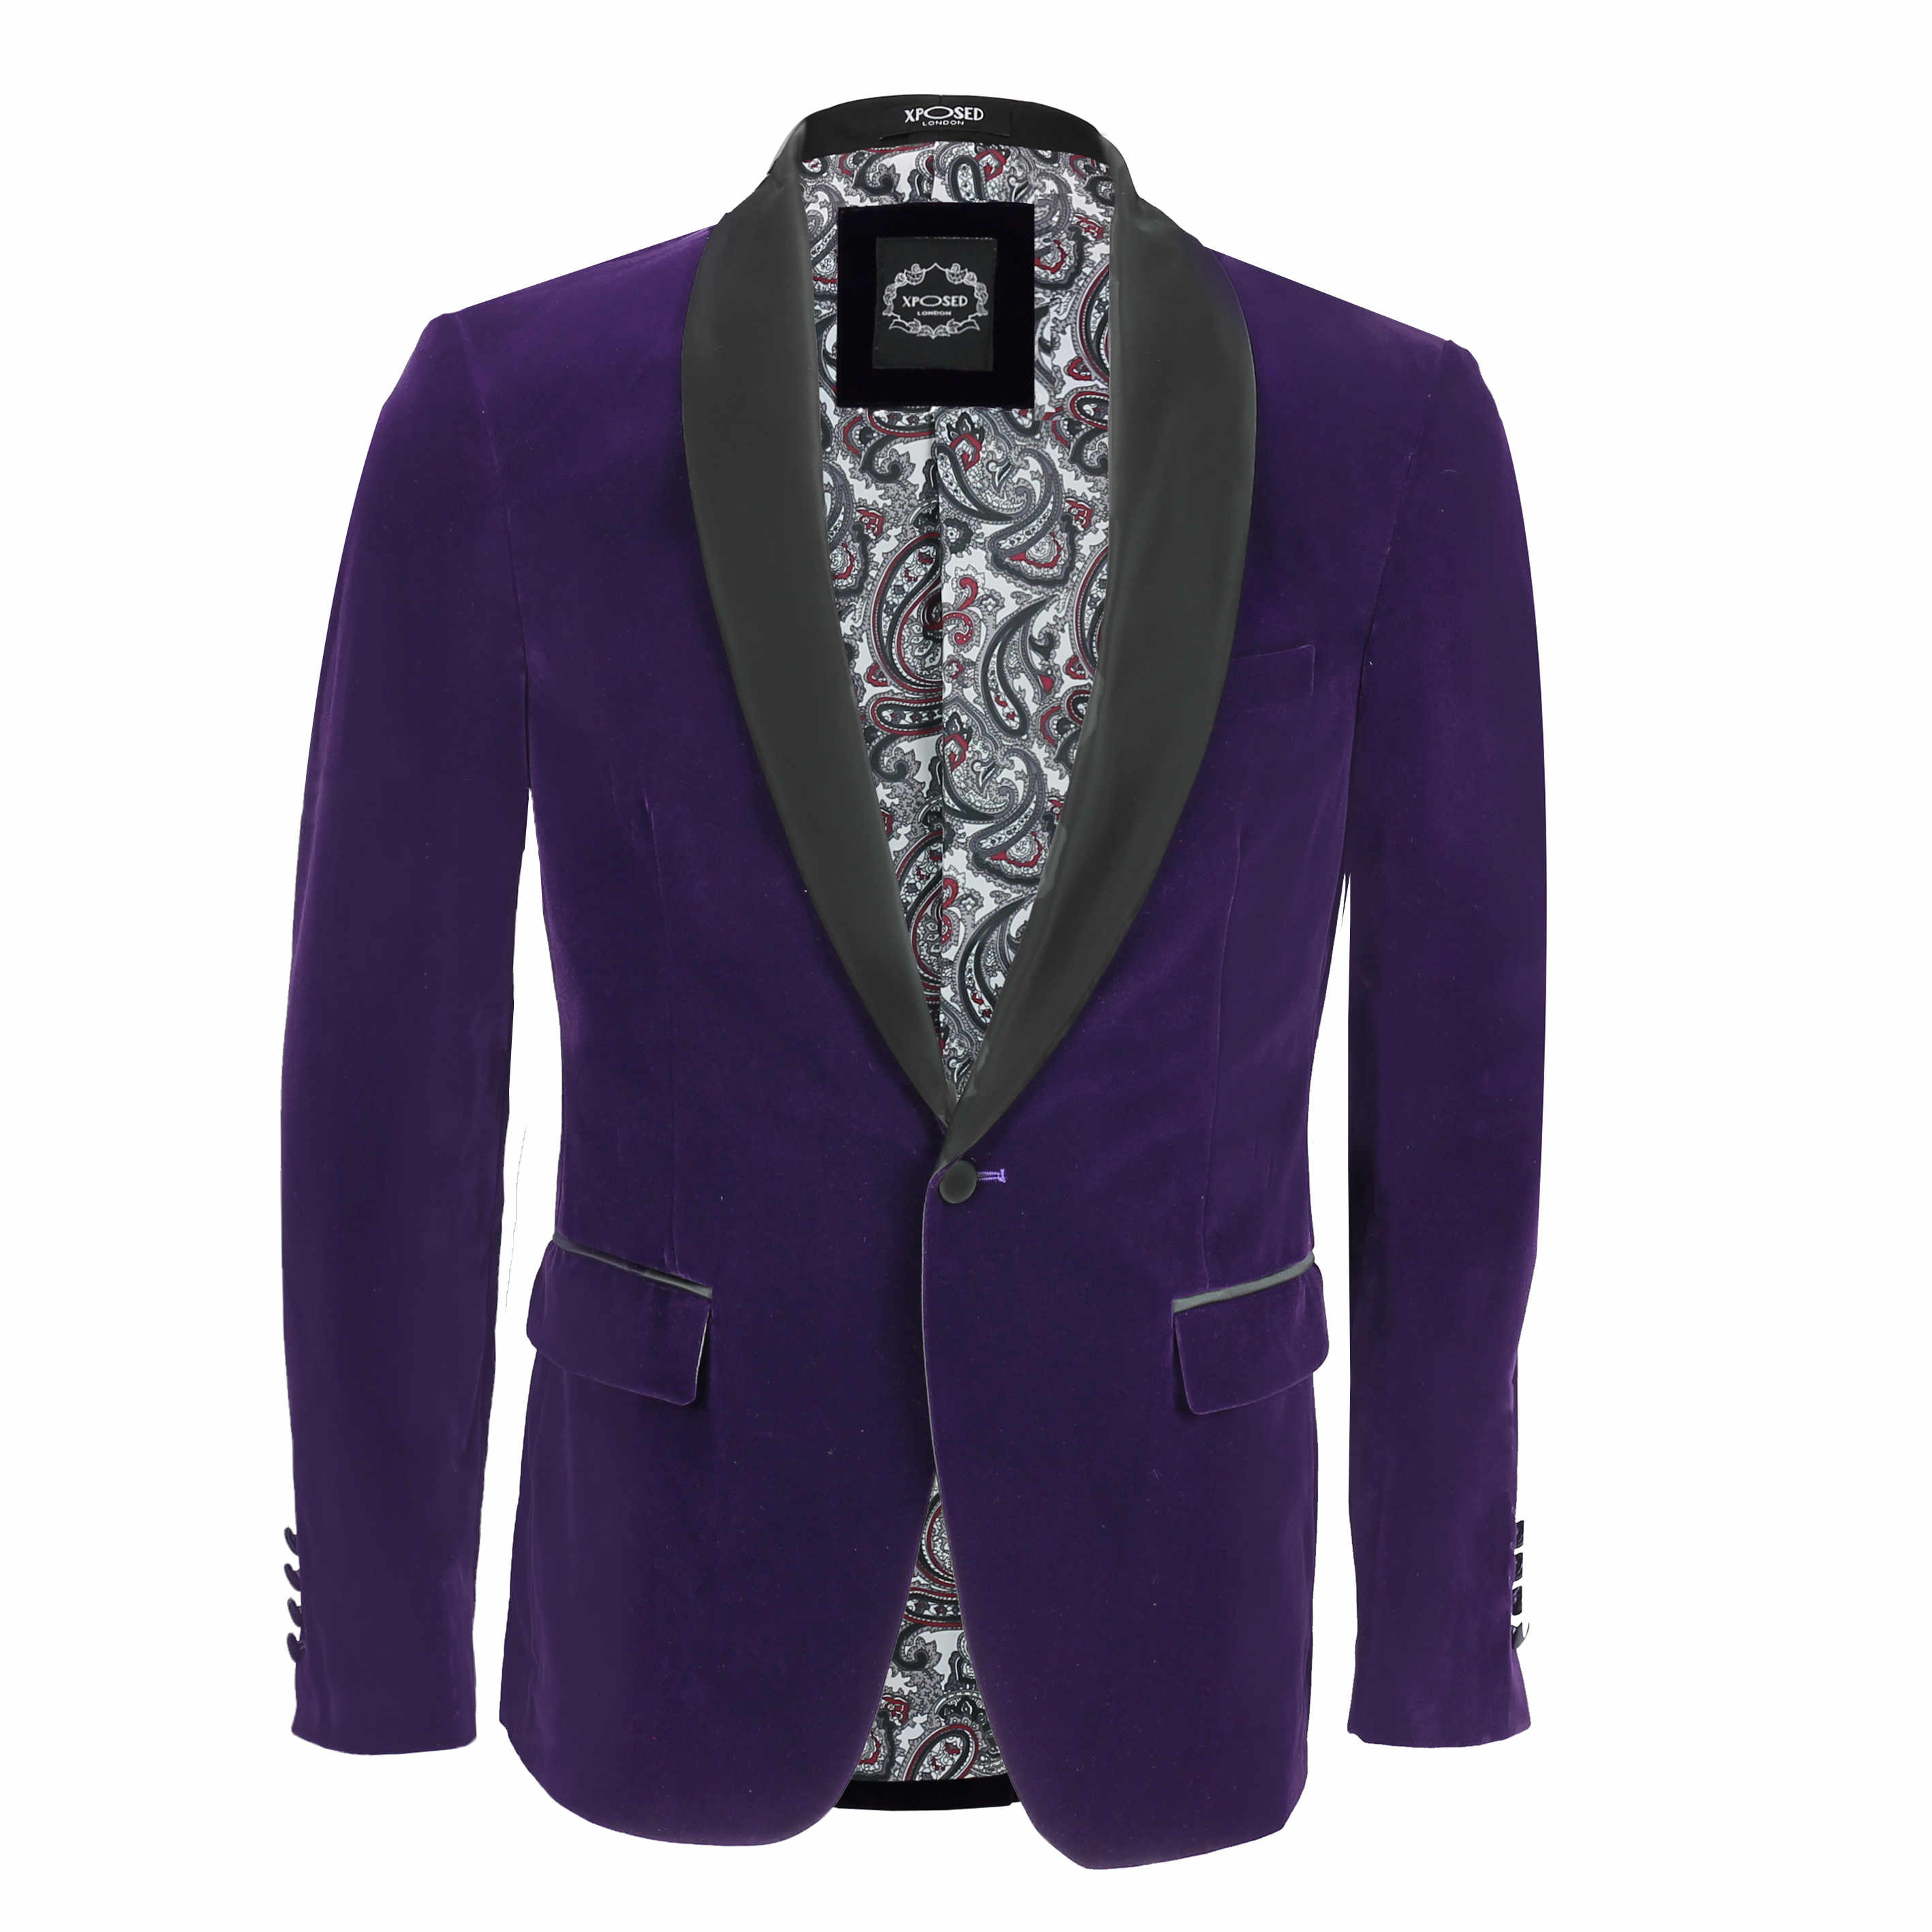 Shop for men's Blazers online at rutor-org.ga Browse the latest SportCoats styles for men from Jos. A Bank. FREE shipping on orders over $